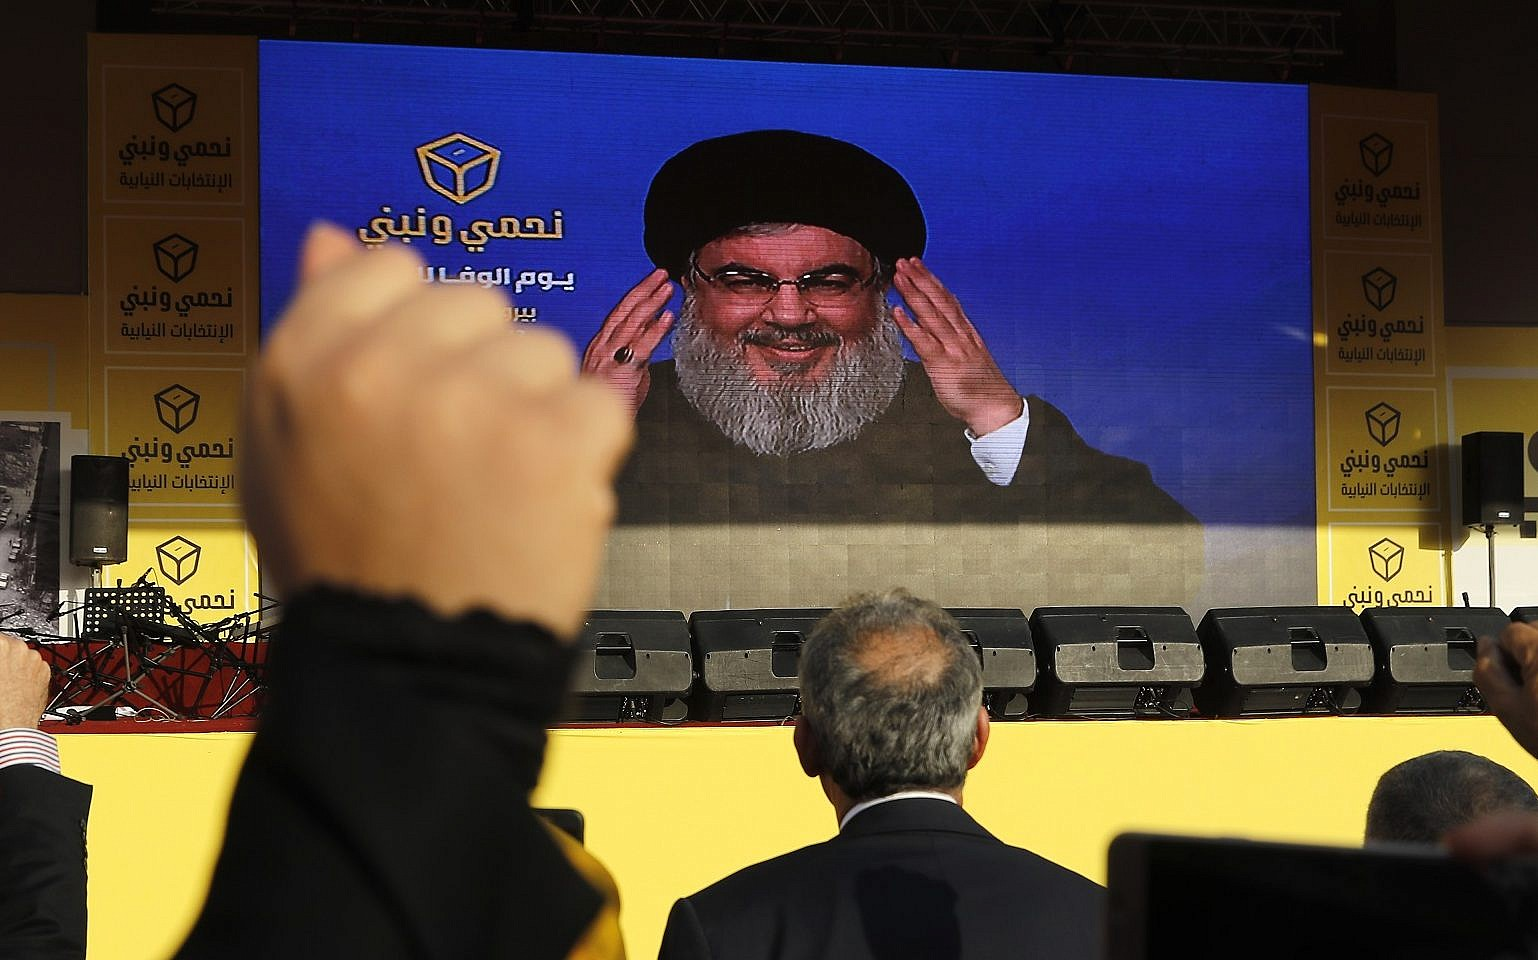 File Hezbollah leader Hassan Nasrallah delivers a broadcast speech through a giant screen during an election campaign in the southern suburb of Beirut Lebanon Friday